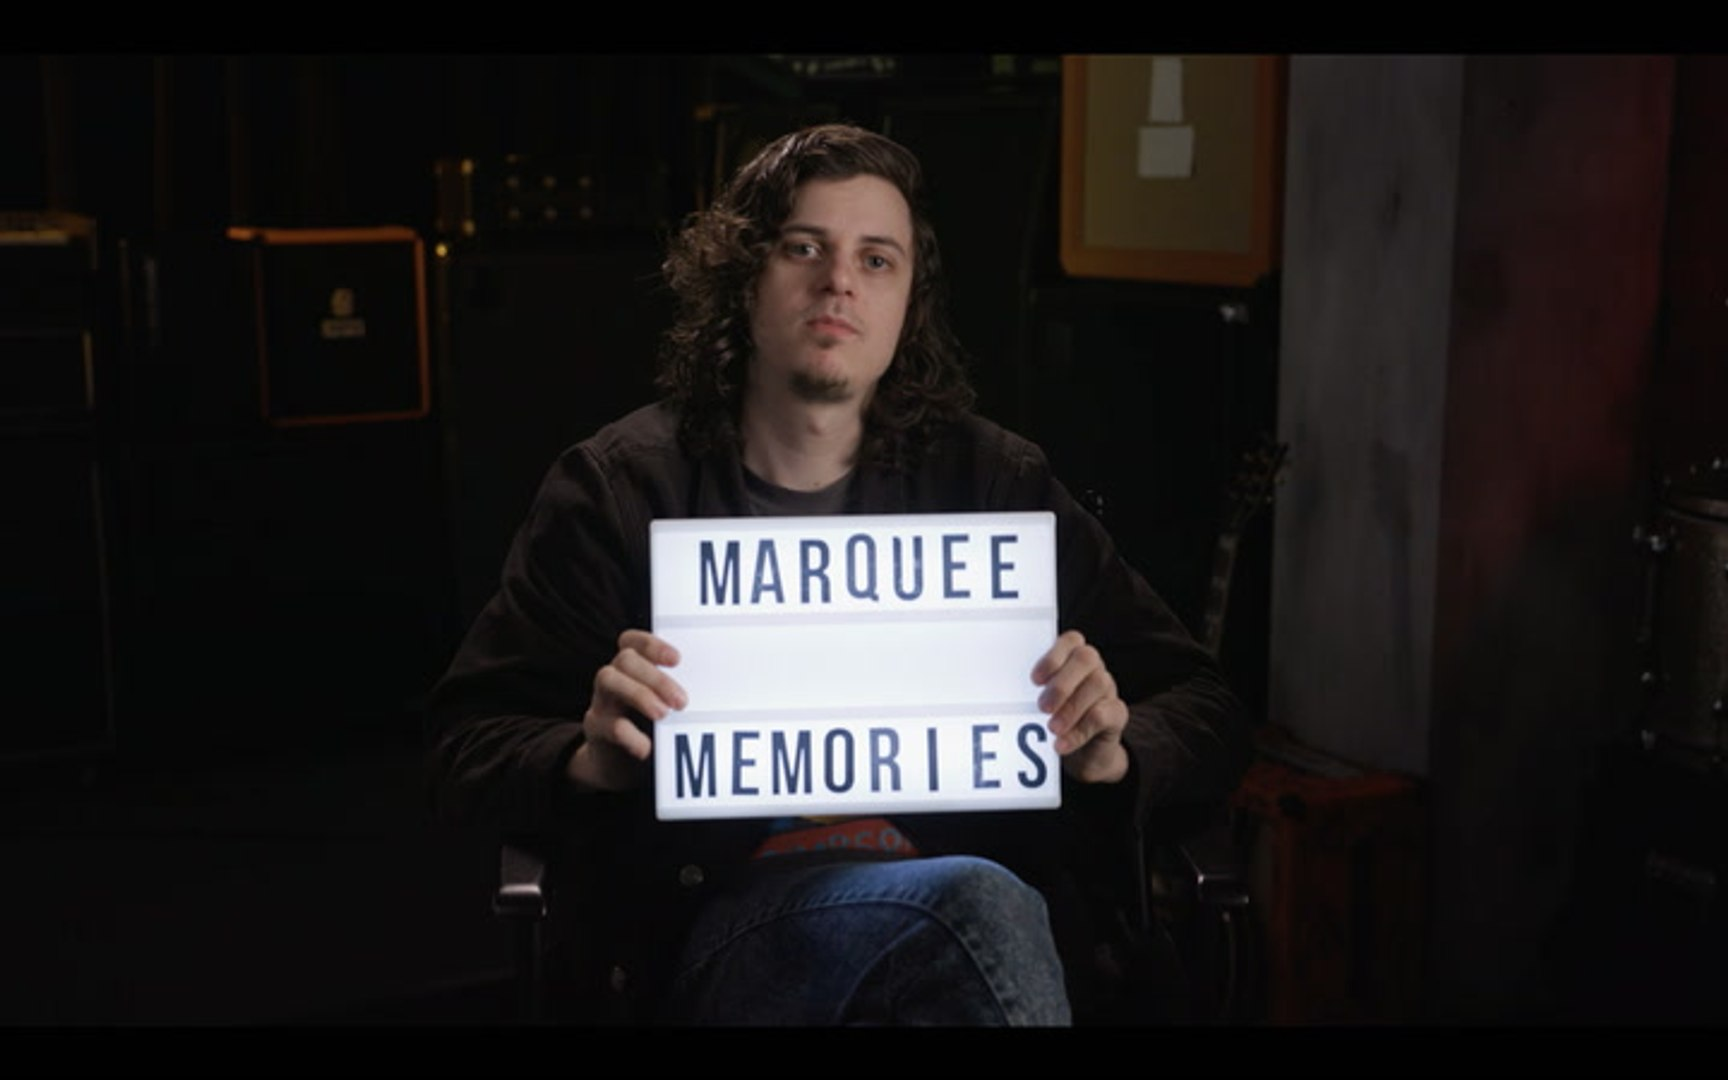 Marquee Memories: Watsky Discusses His Favorite Shows